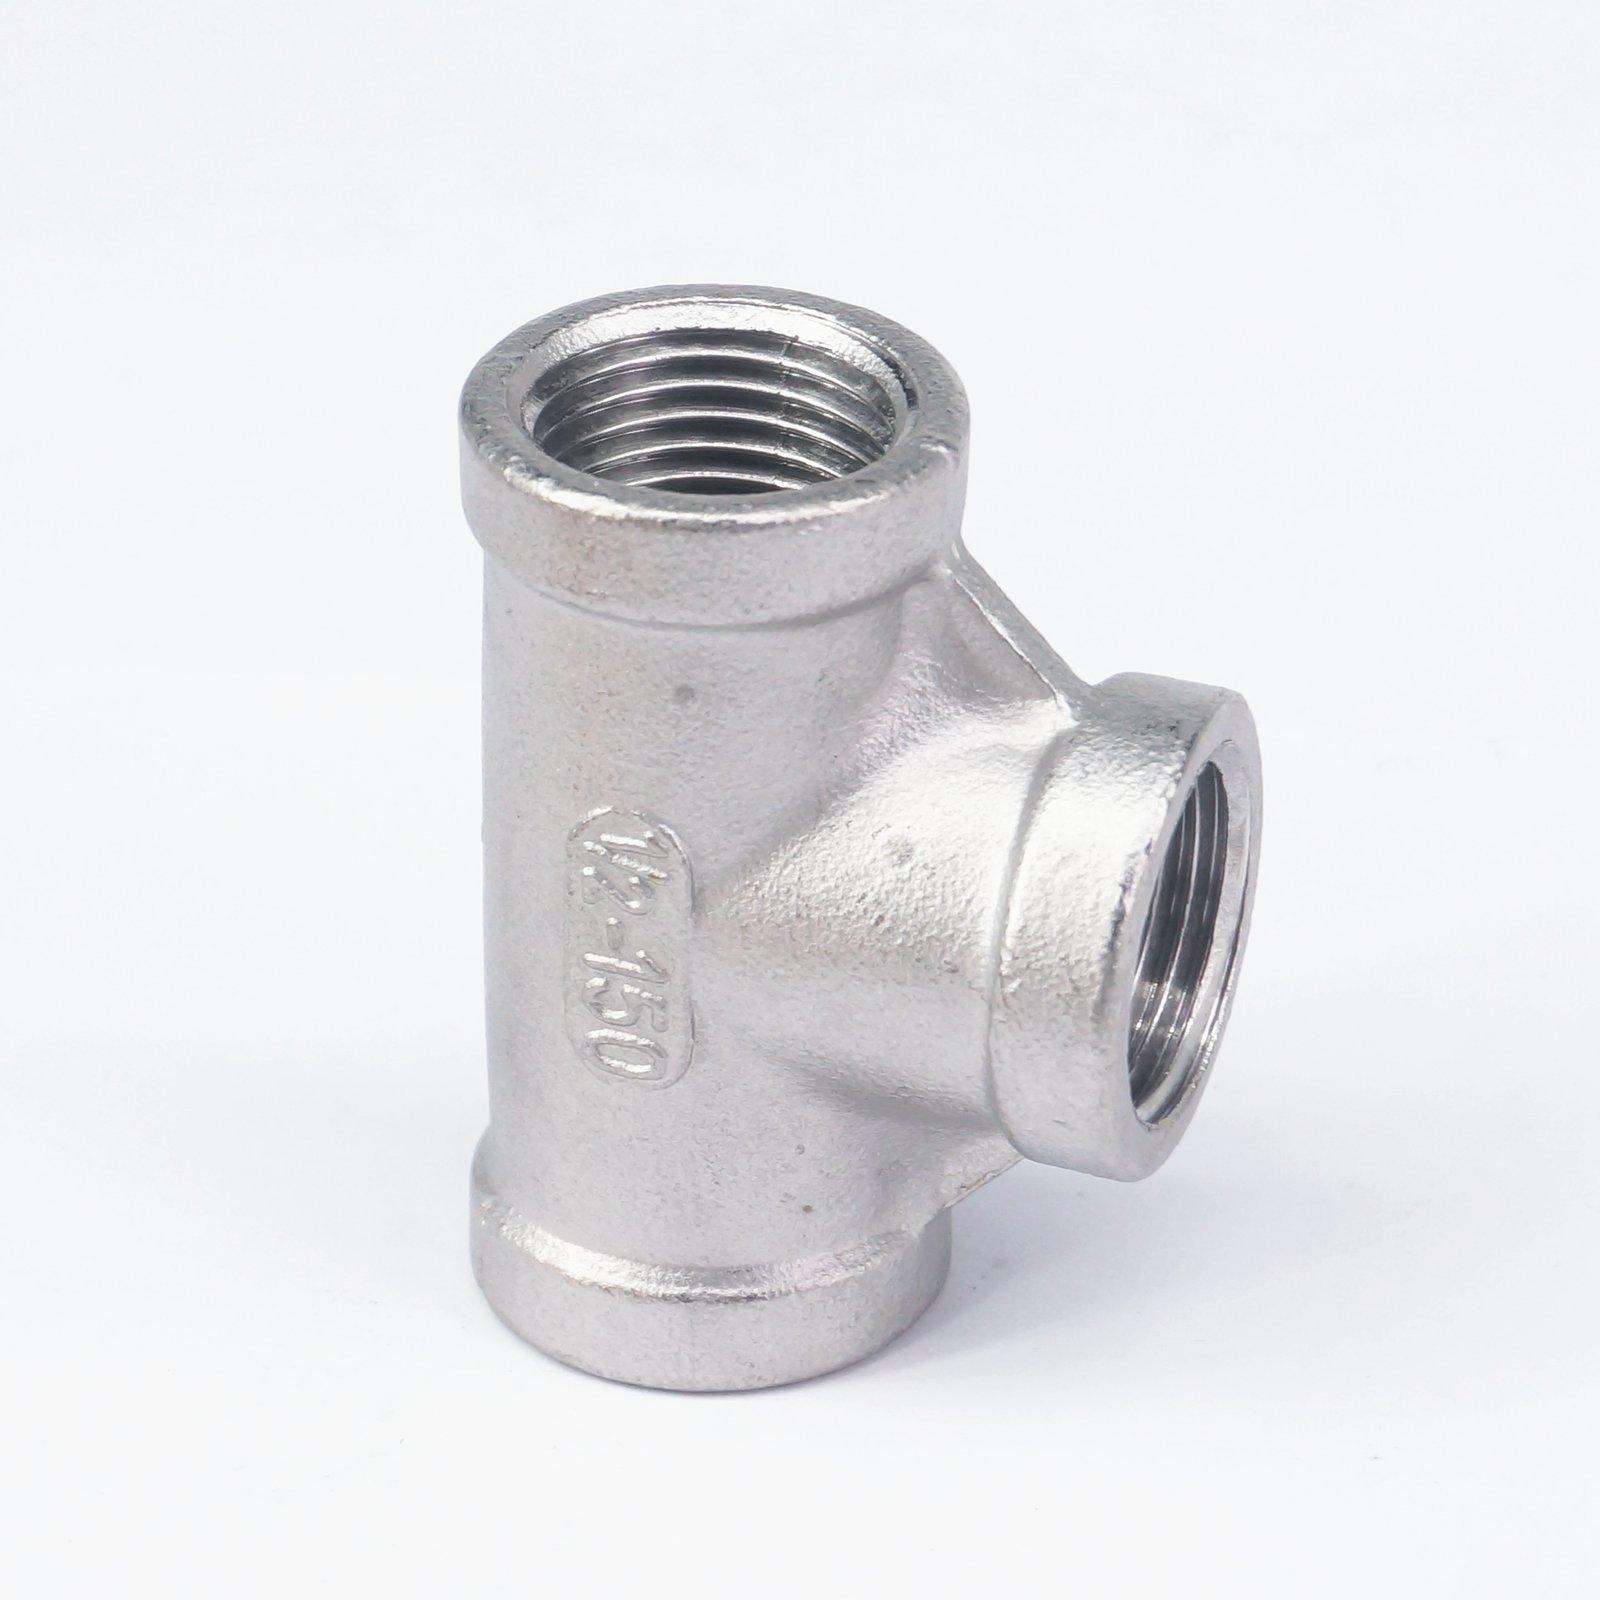 1/2 BSP Euqal Female Tee Thread 3 Way 304 Stainless Steel Pipe Fitting Connector Coupling for water air gas